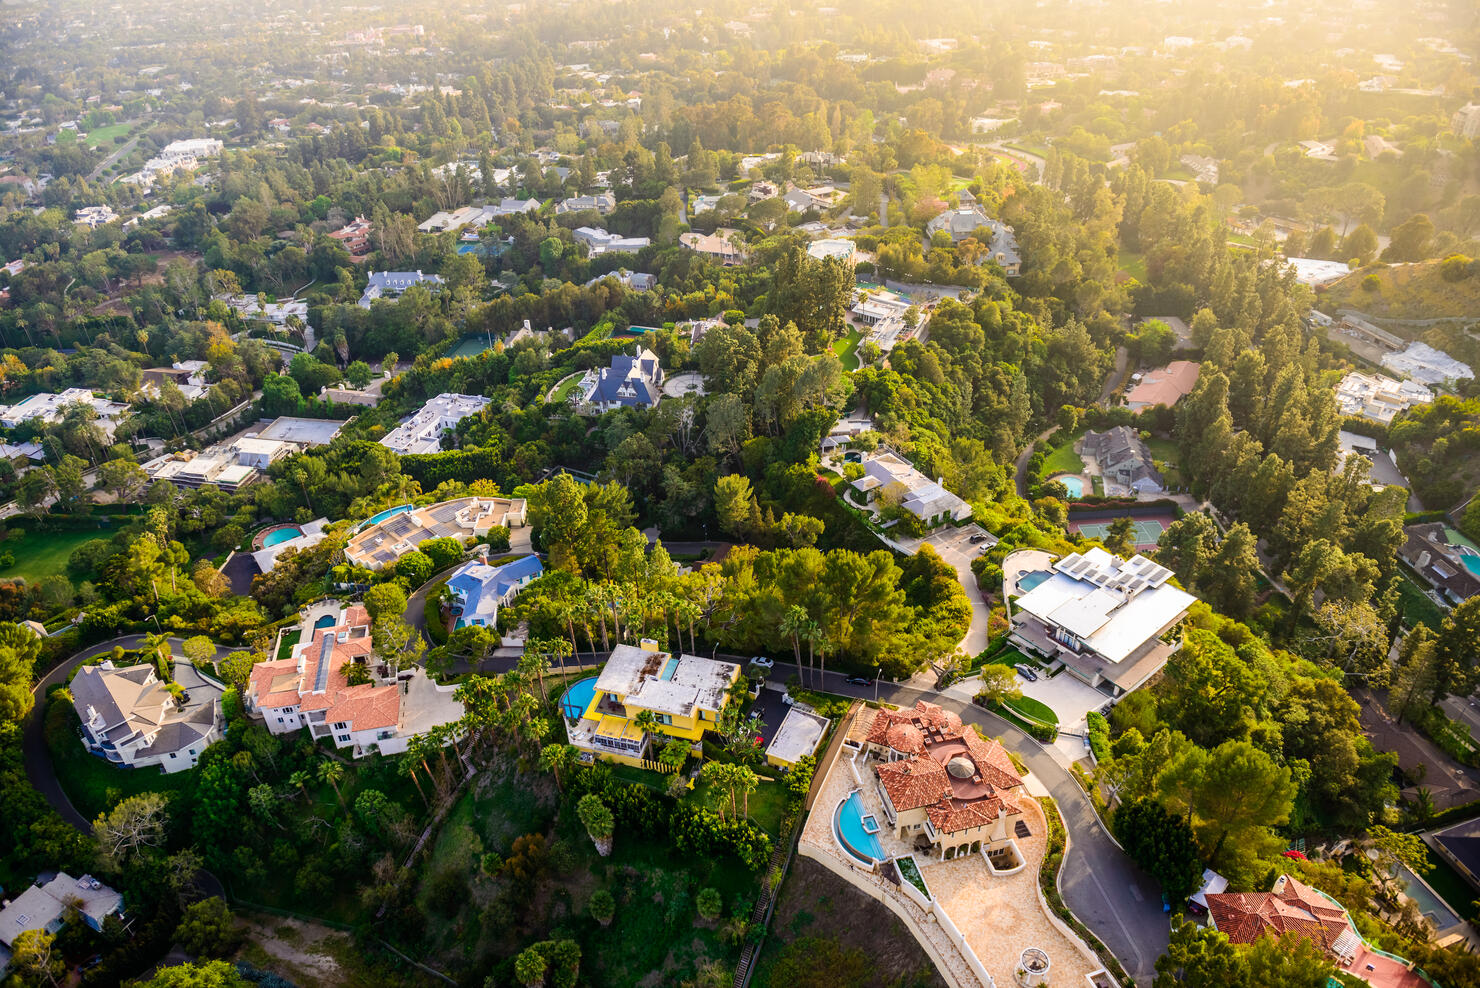 Beverly Hills mansions landscape aerial view -Los Angeles California